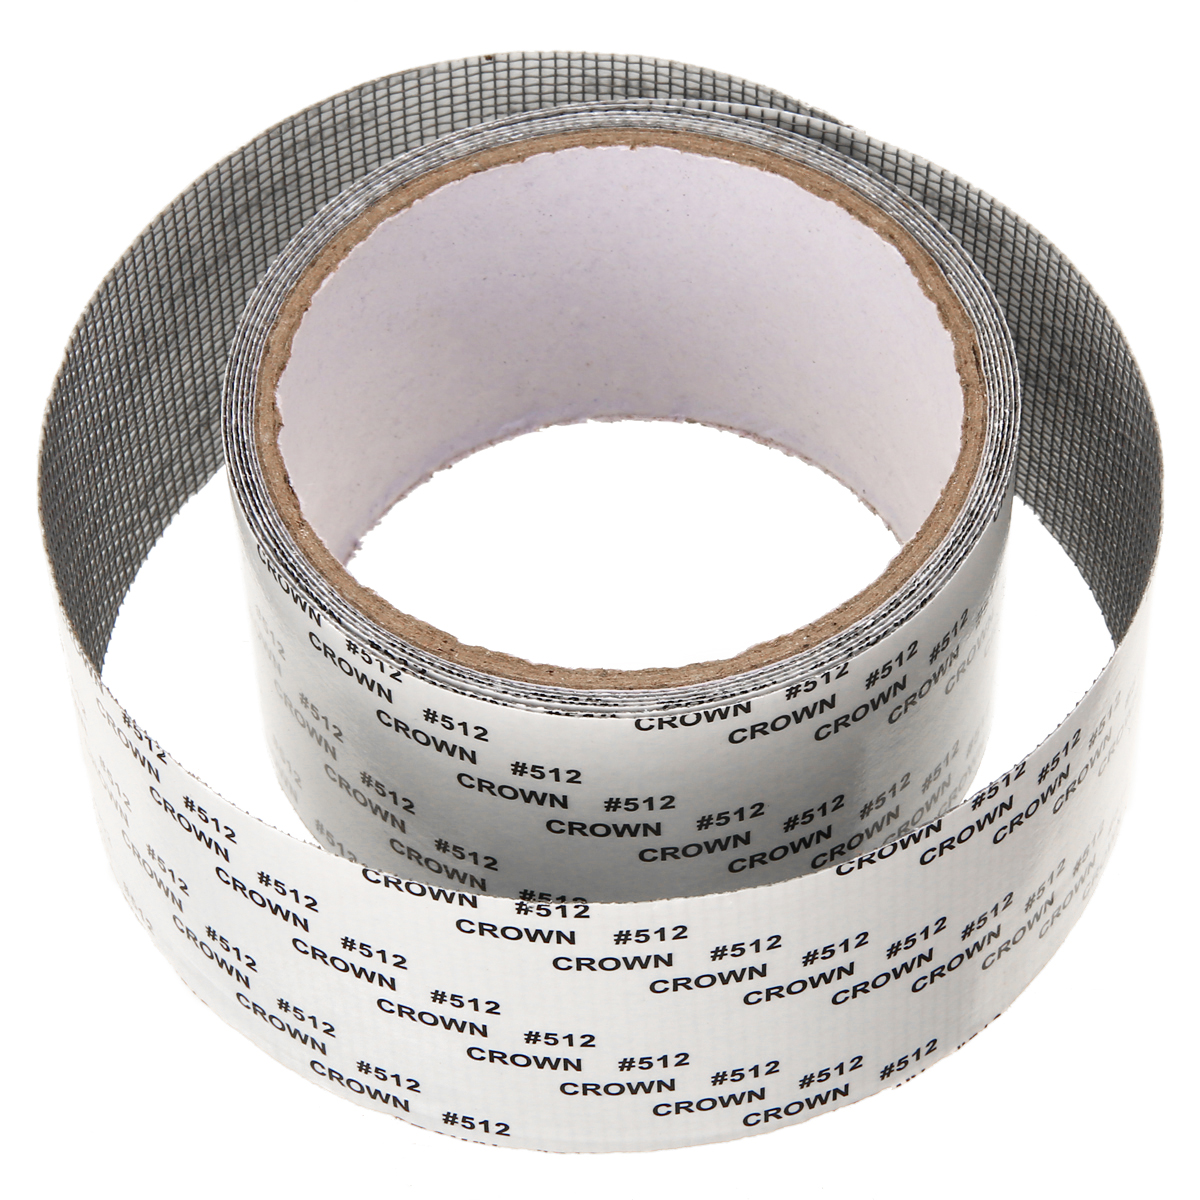 1 Roll Window Door Screen Repair Tape Fiberglass Covering Mesh Screen Patch Repair Kit Anti-mosquito Strong Adhesive Mesh